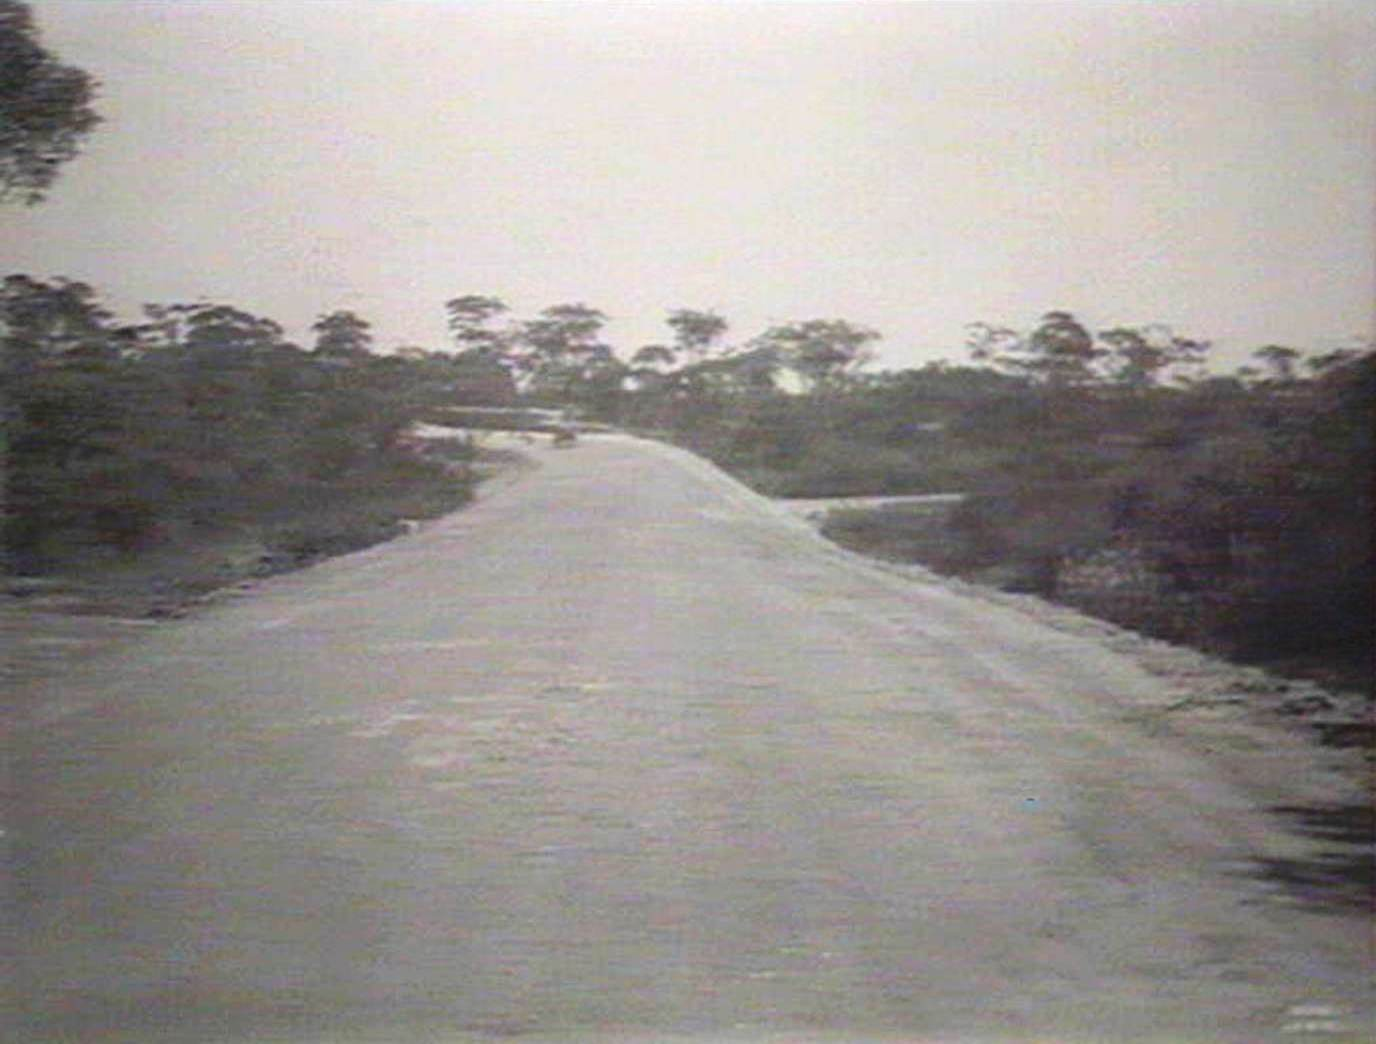 f8d23130f Pittwater Rd after construction looking towards Pacific Highway August  1935. Image No.  d1 21454h